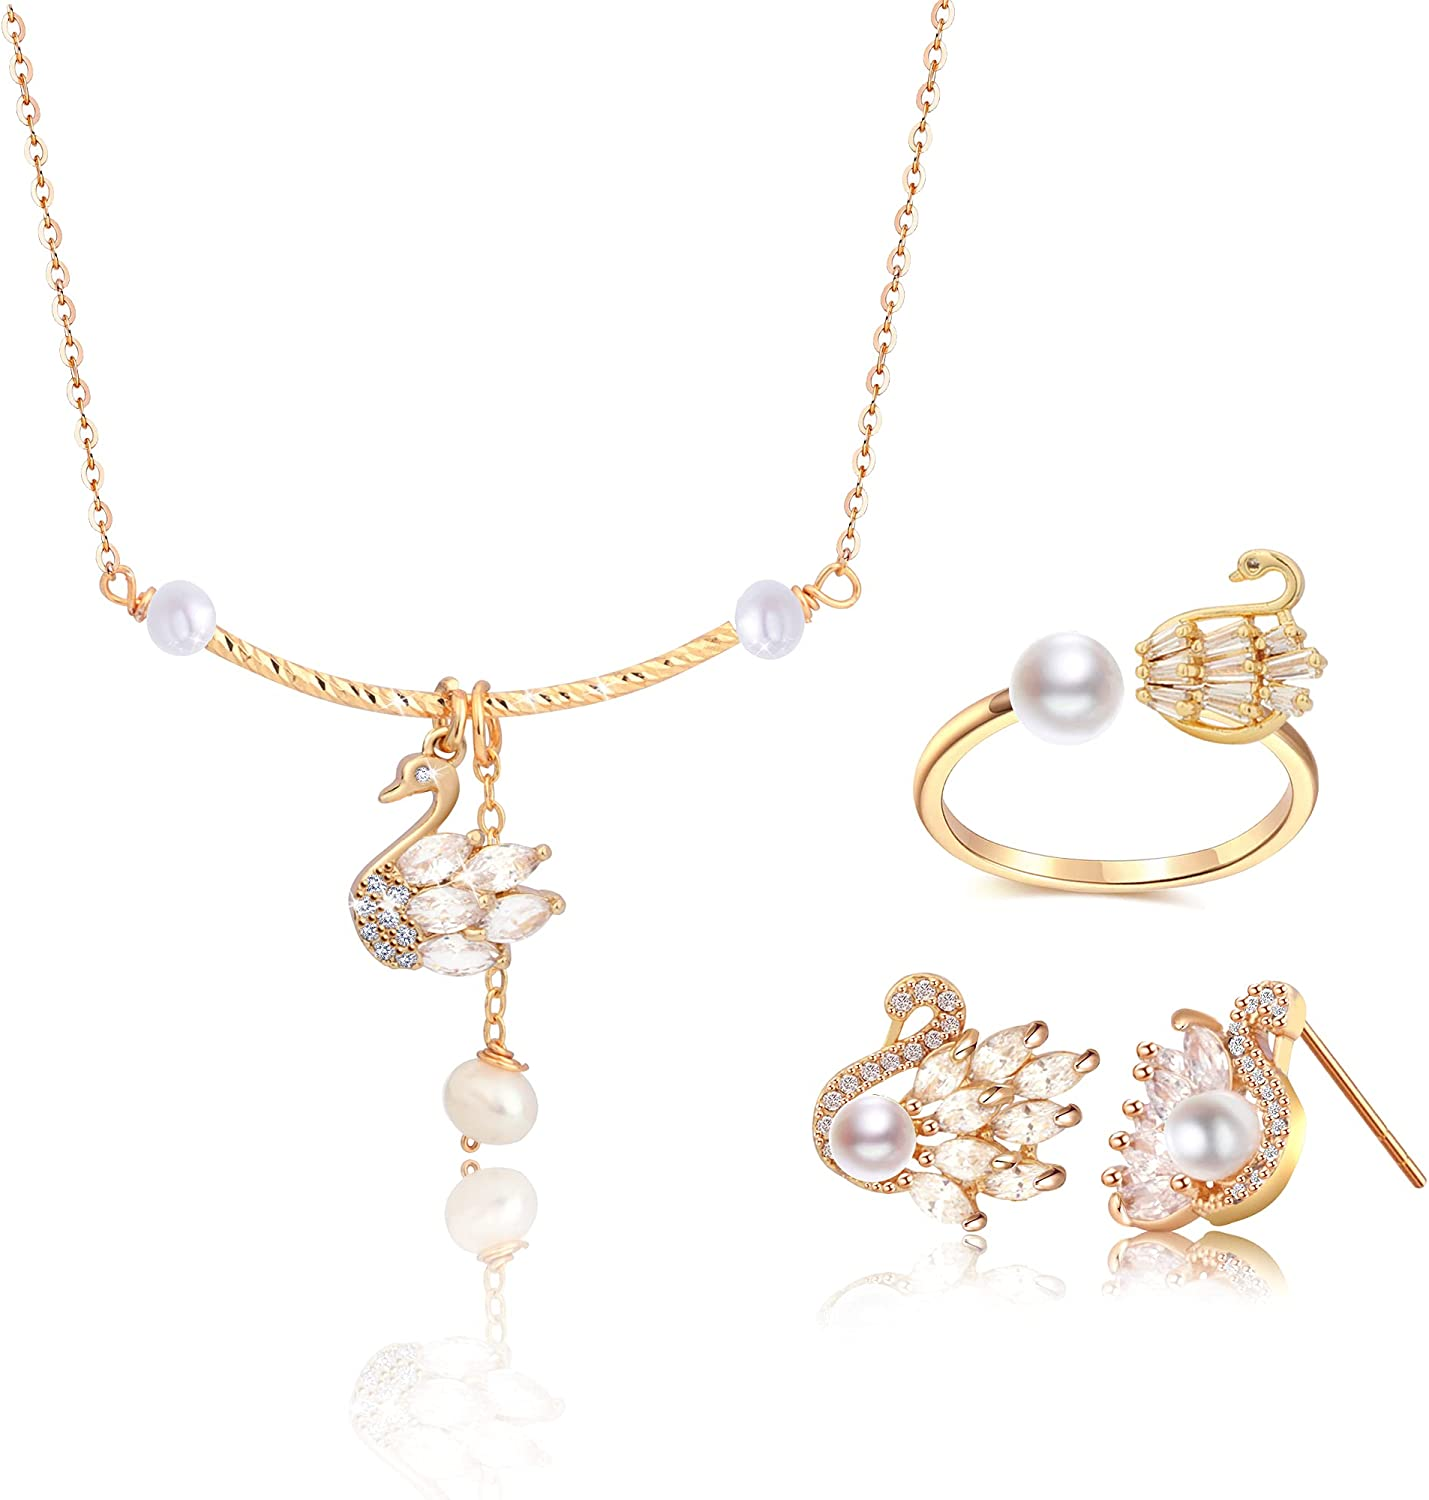 Wixwara Sparkle Swan Pearl Jewelry Set for Women/Girls, Choker Necklace, Stud Earrings, Open Adjustable Ring for Women, 14K Gold Plated Hypoallergenic Jewelry, Yellow Gold